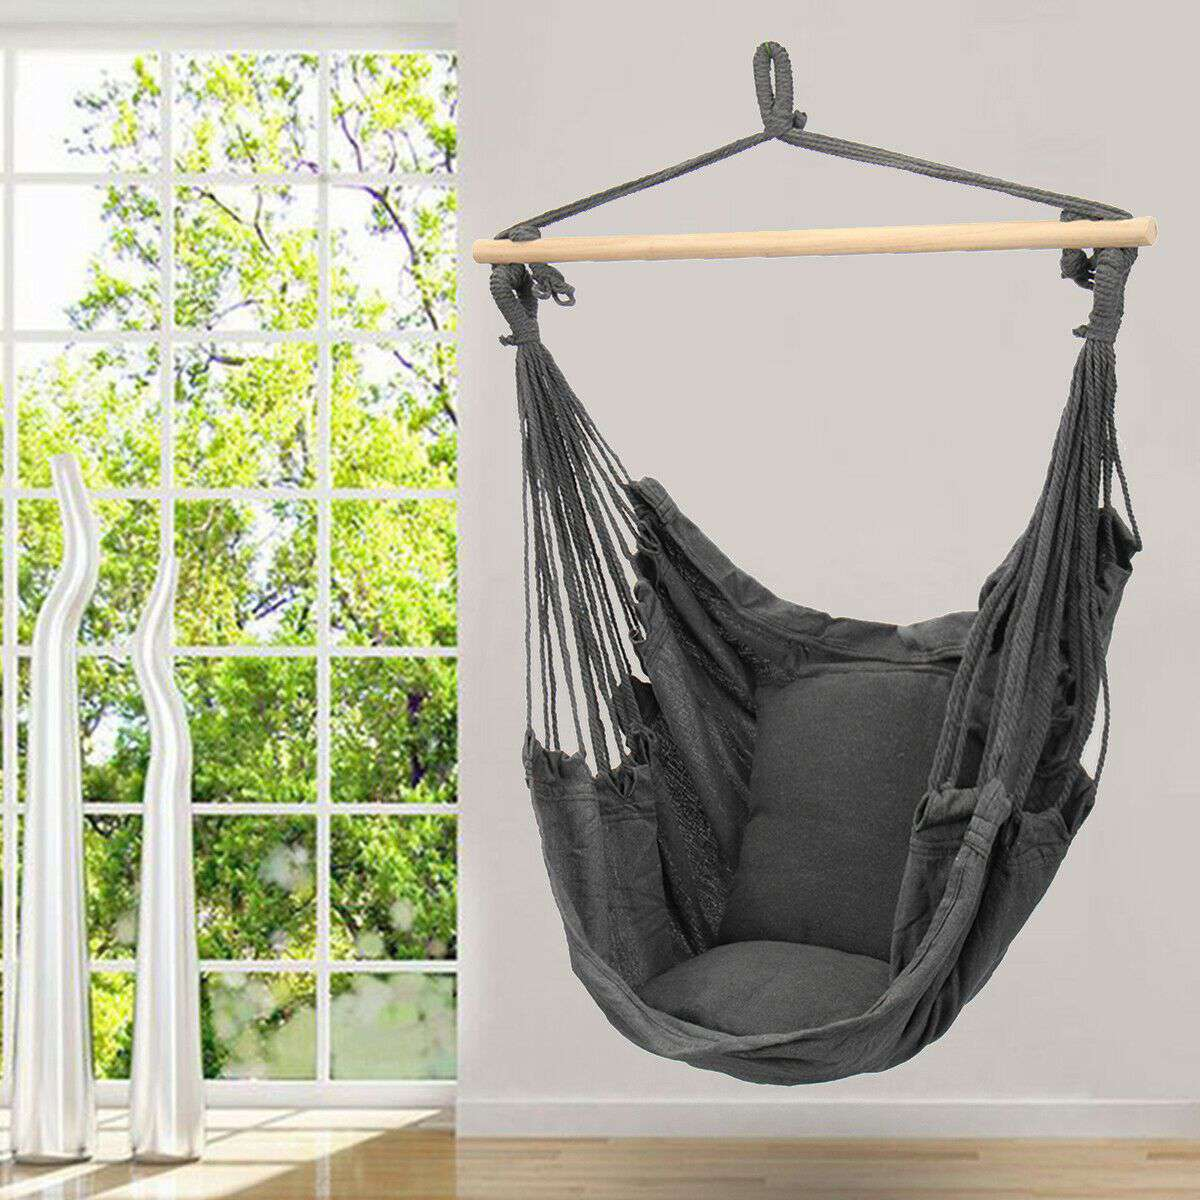 Deluxe Hanging Chair in Grey Colour